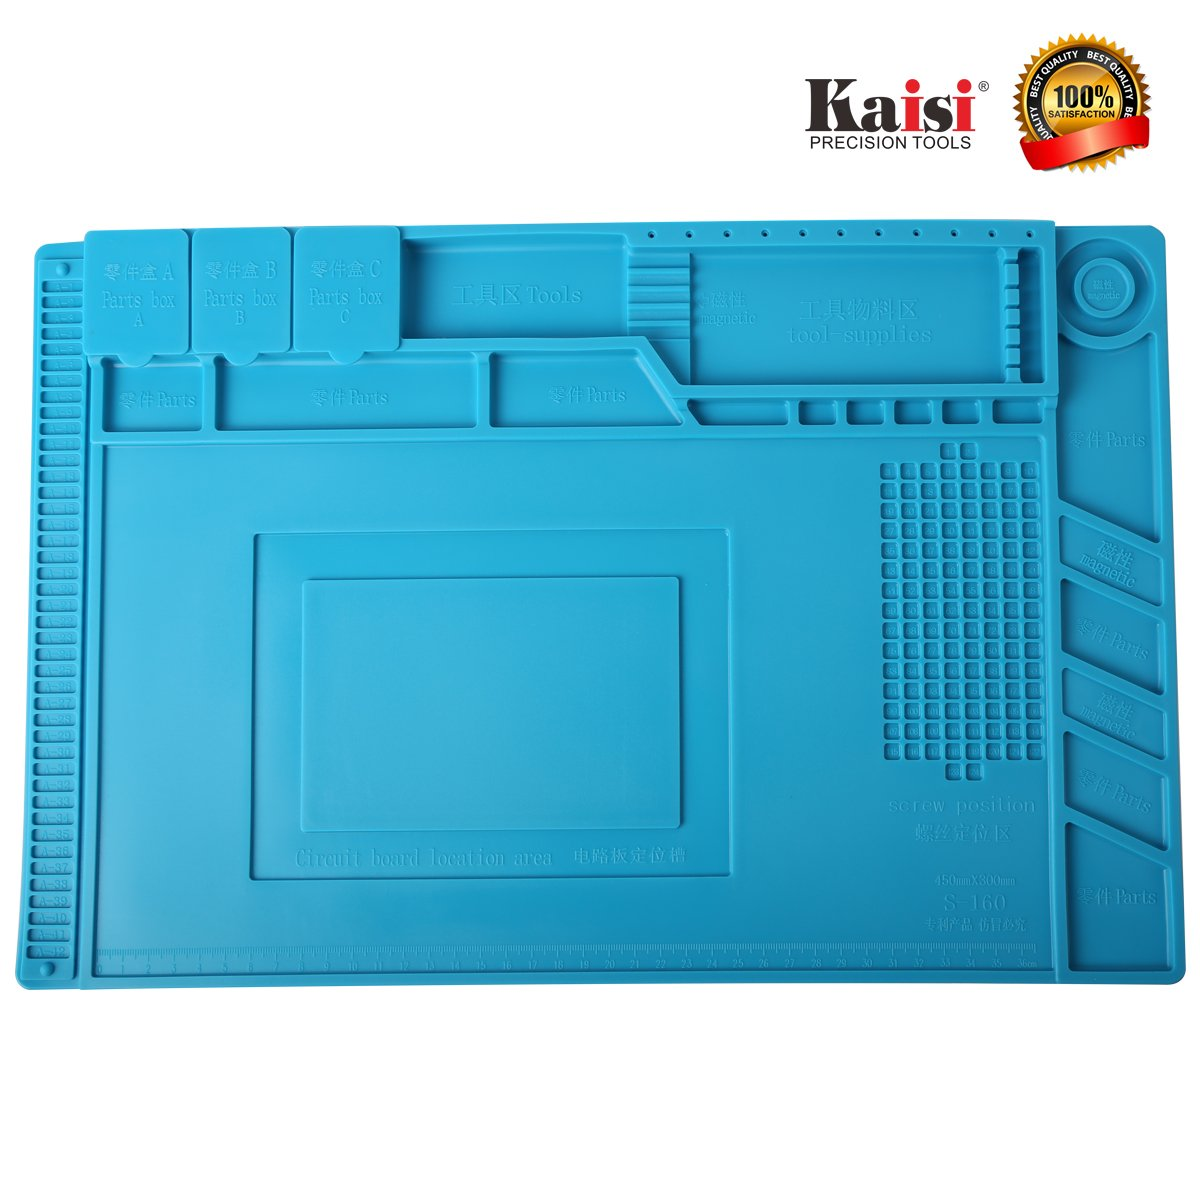 Kaisi S-160 Soldering Mat Phone Repair Mat Maintenance Station Magnetic Heat Insulation Silicone Mat Maintenance Platform for Phone Repair, Computer Repair and Other Devices Repair